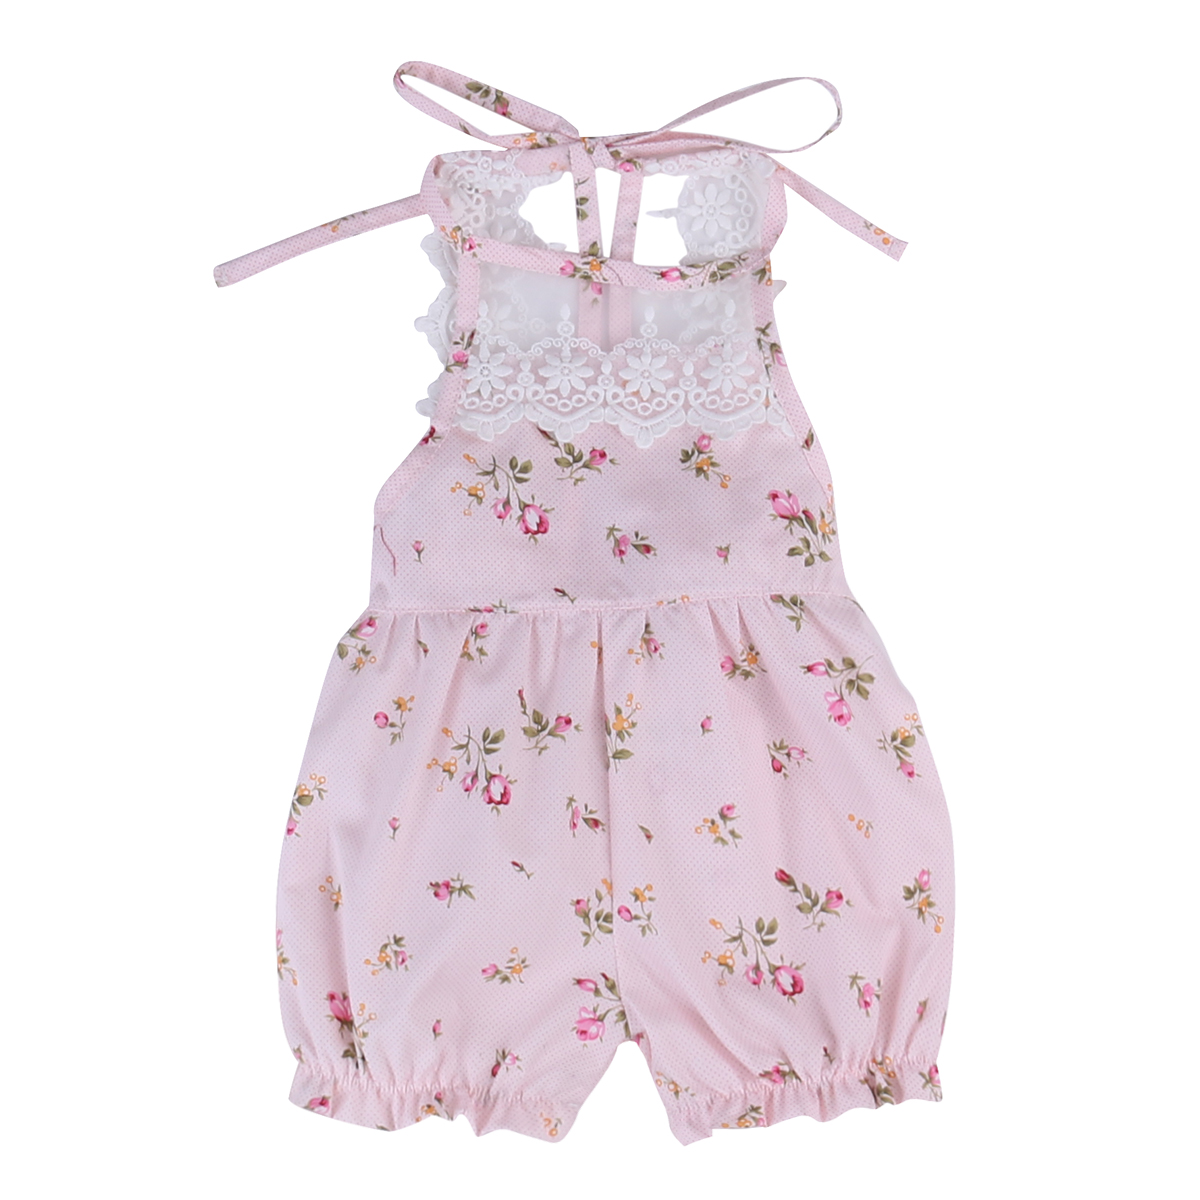 Newborn Baby Girls Lace Floral Romper Jumpsuit Kids Girls Cute Cotton Summer Sunsuit Clothes Outfits summer newborn infant baby girl romper short sleeve floral romper jumpsuit outfits sunsuit clothes